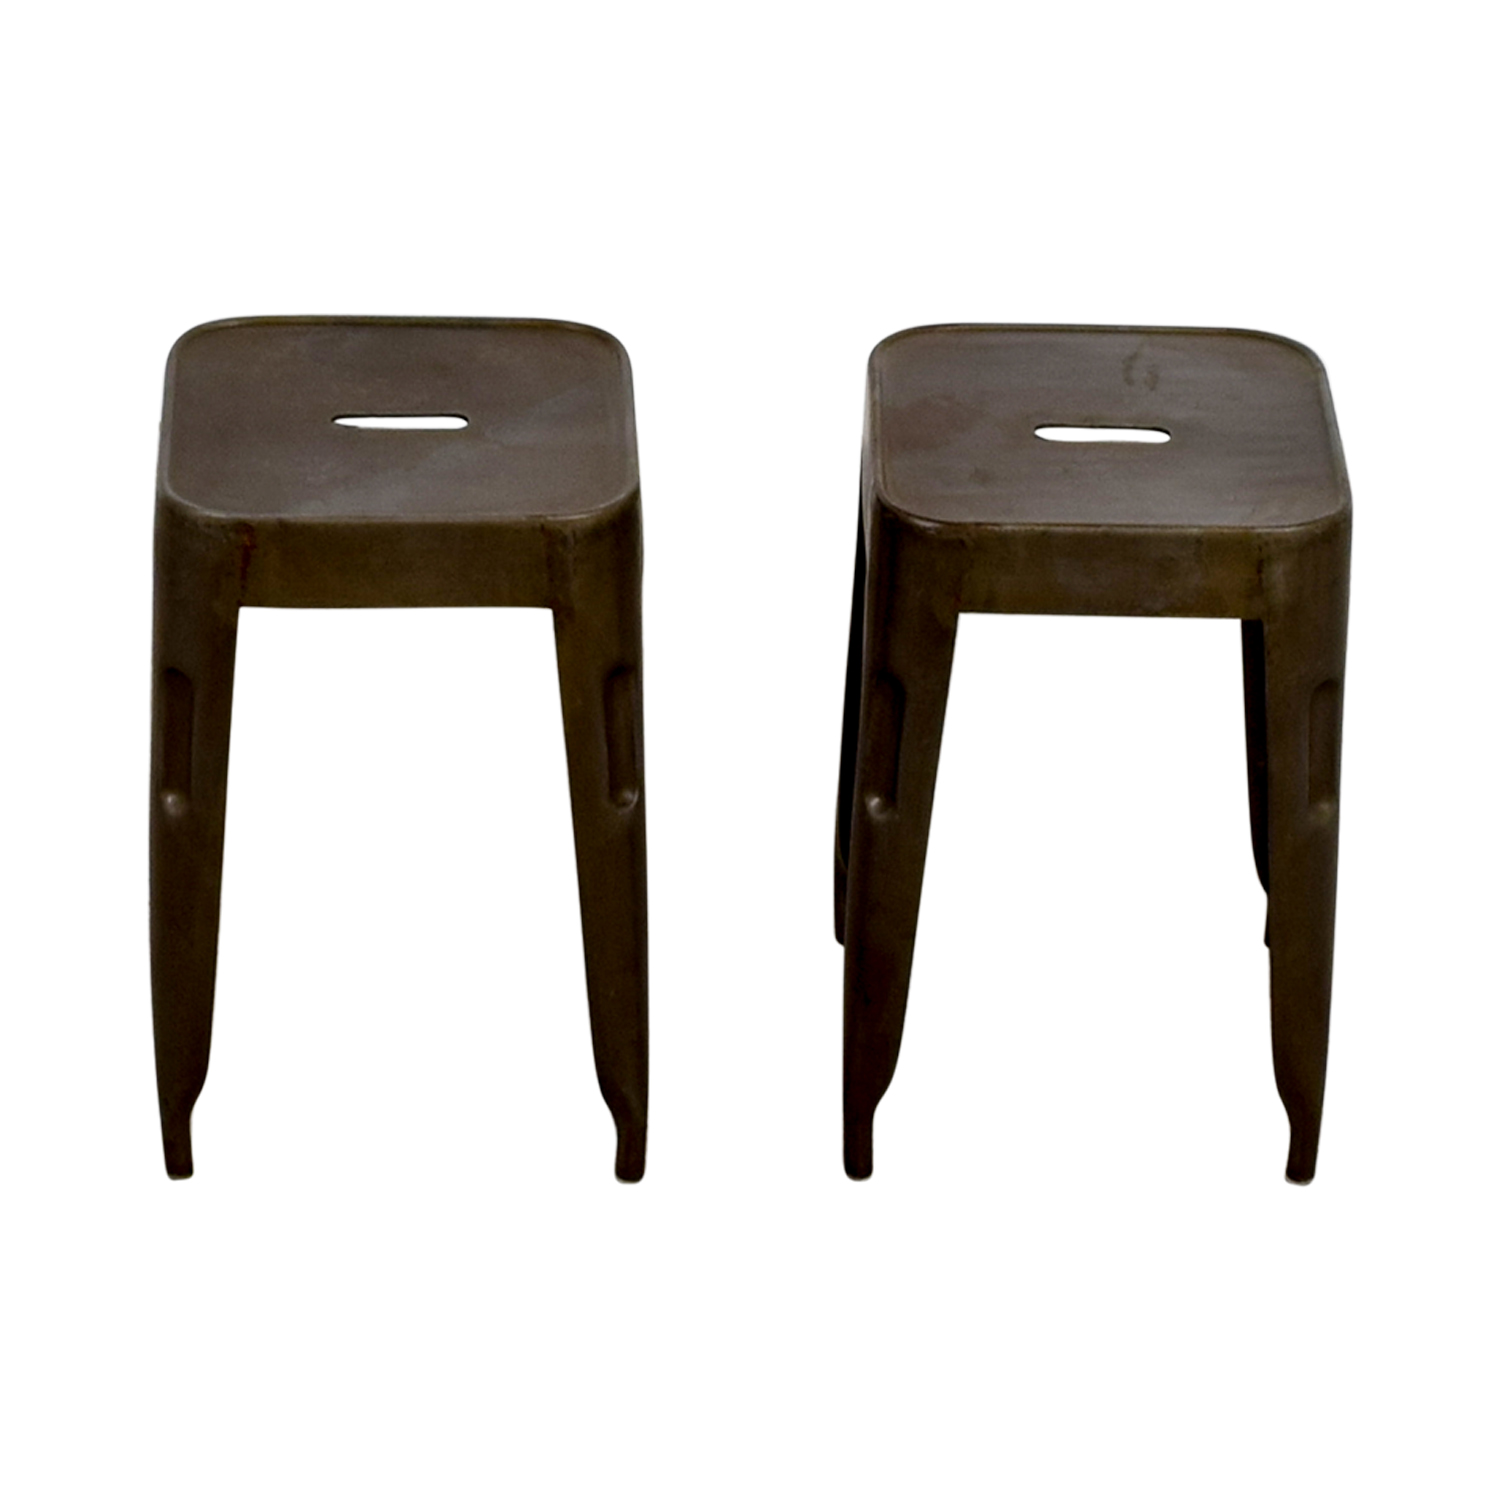 Industrial Brass Nickle Stools used